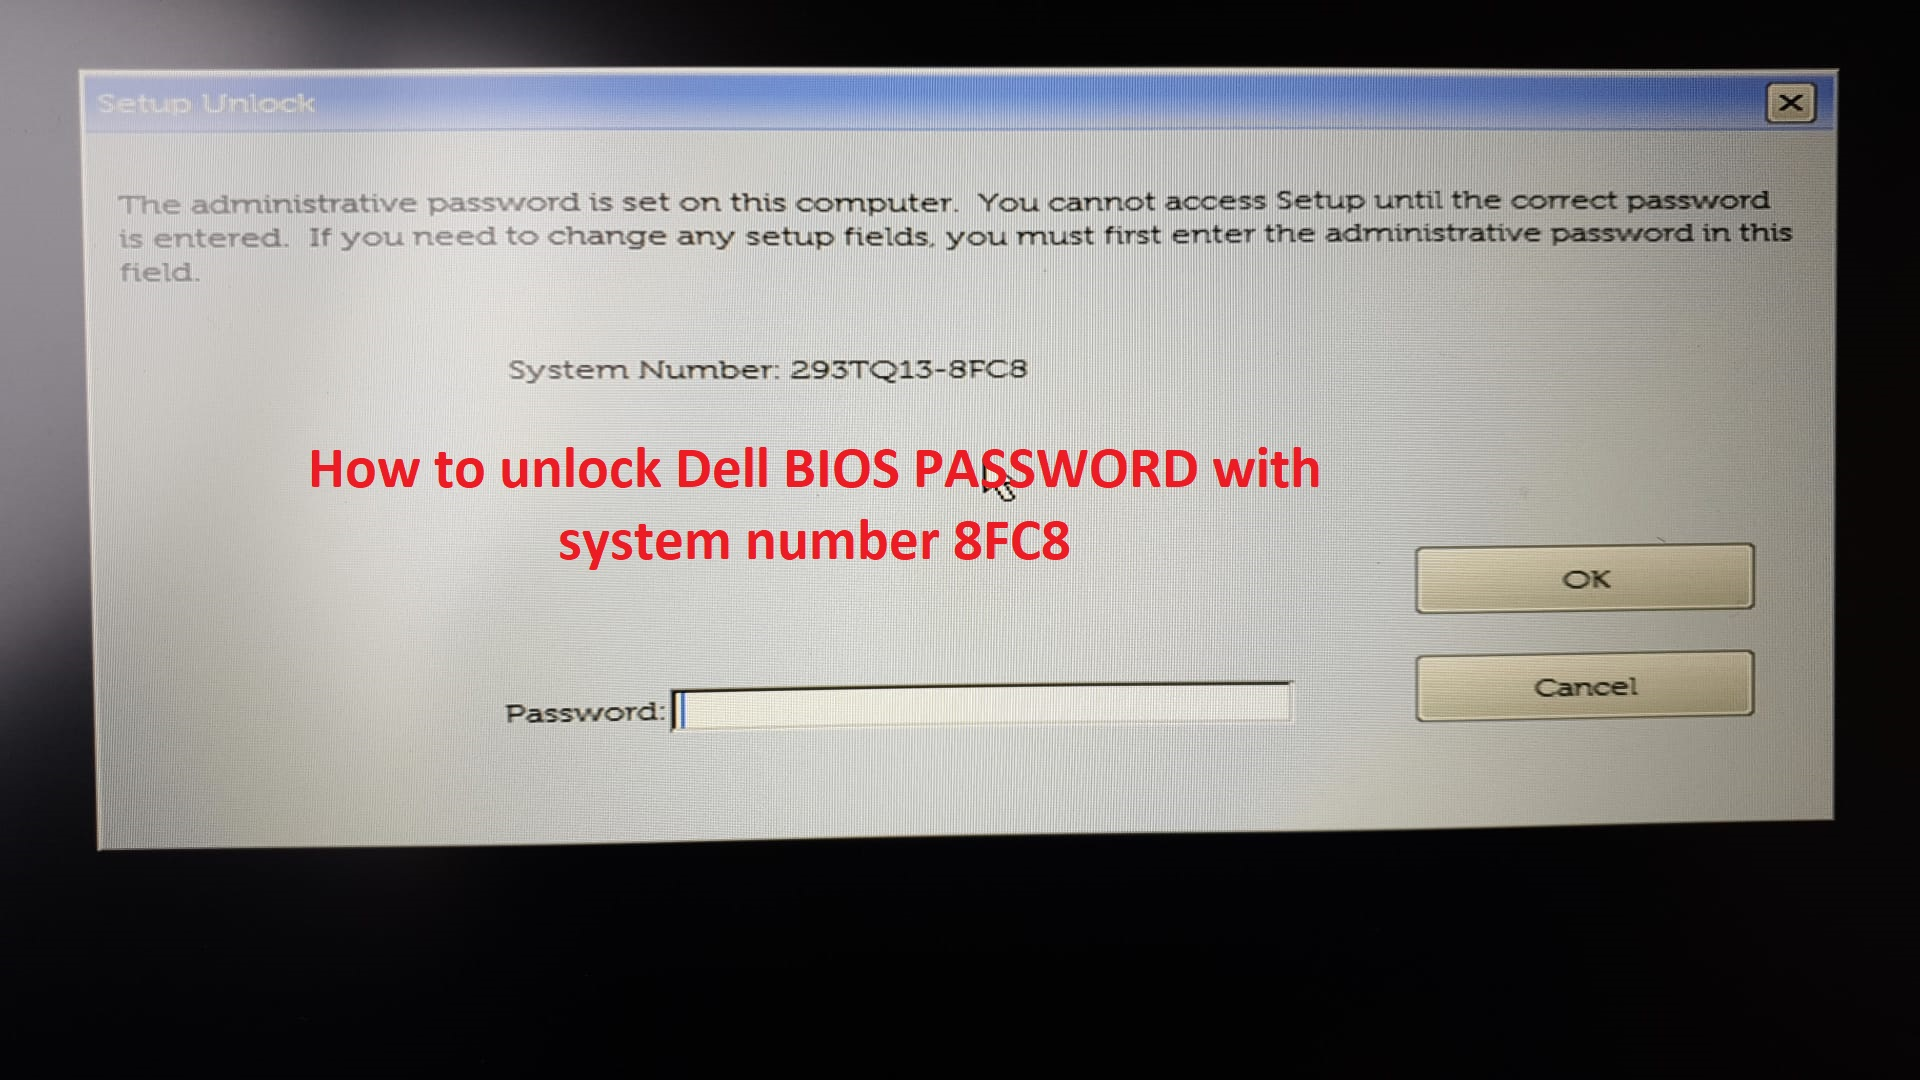 Unlock dell bios password